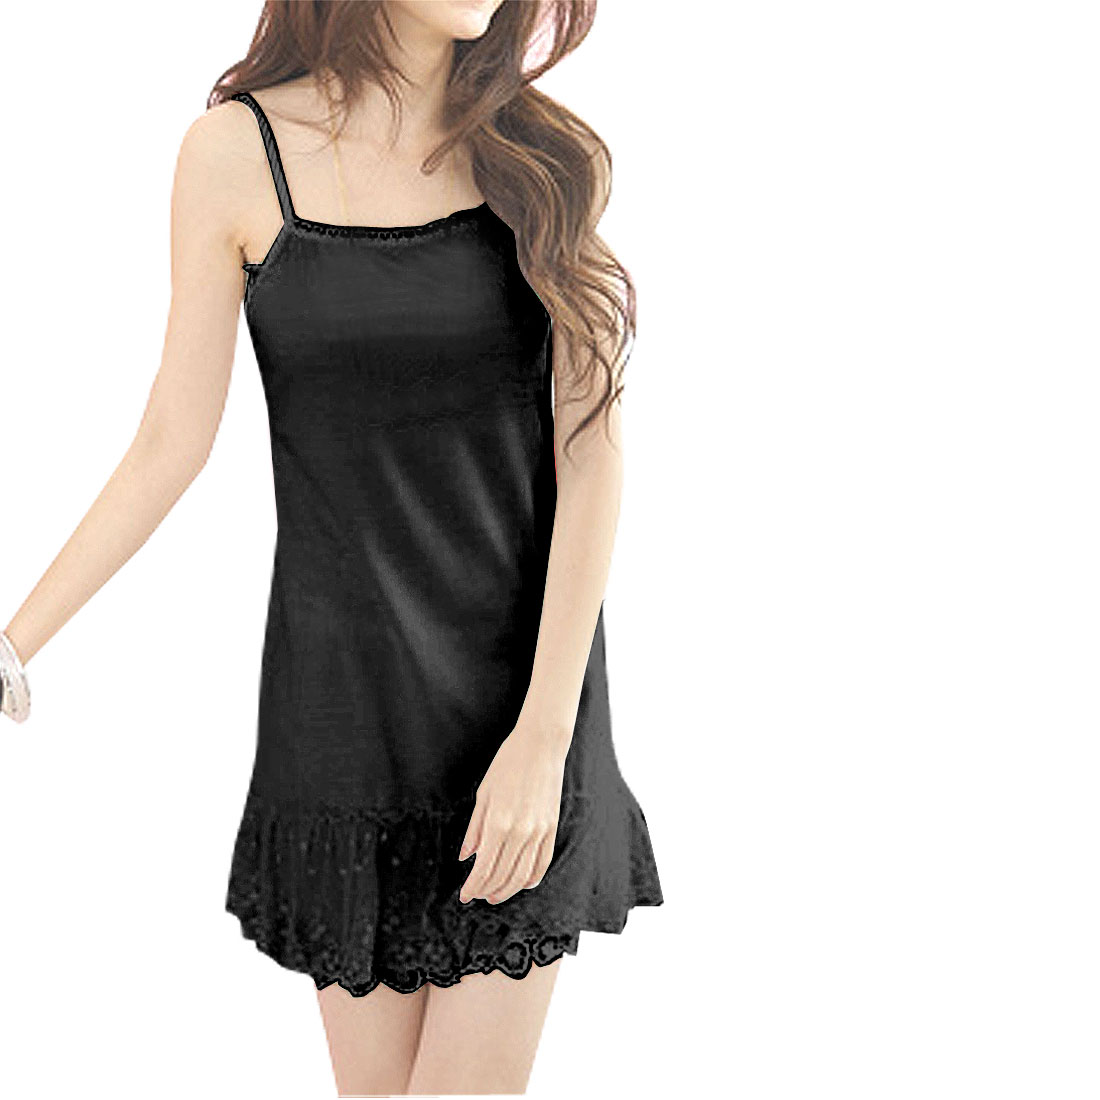 Ladies Square Collar Flowers Lace Hem Basic Slip Dress Black XS